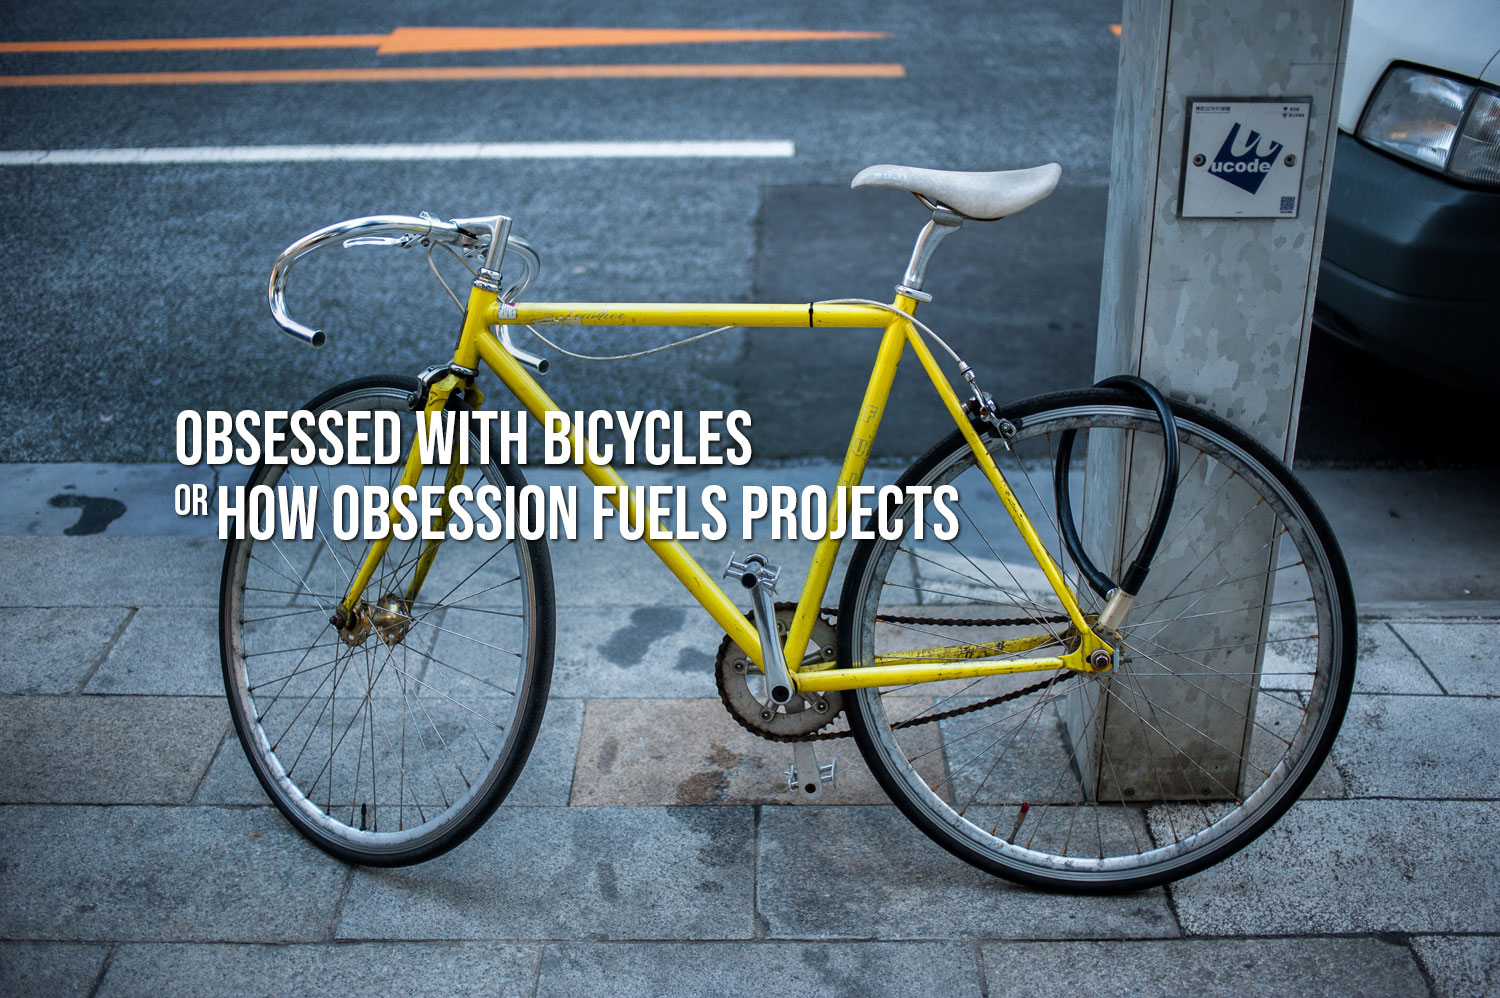 obsessed-bicycles-0.jpg